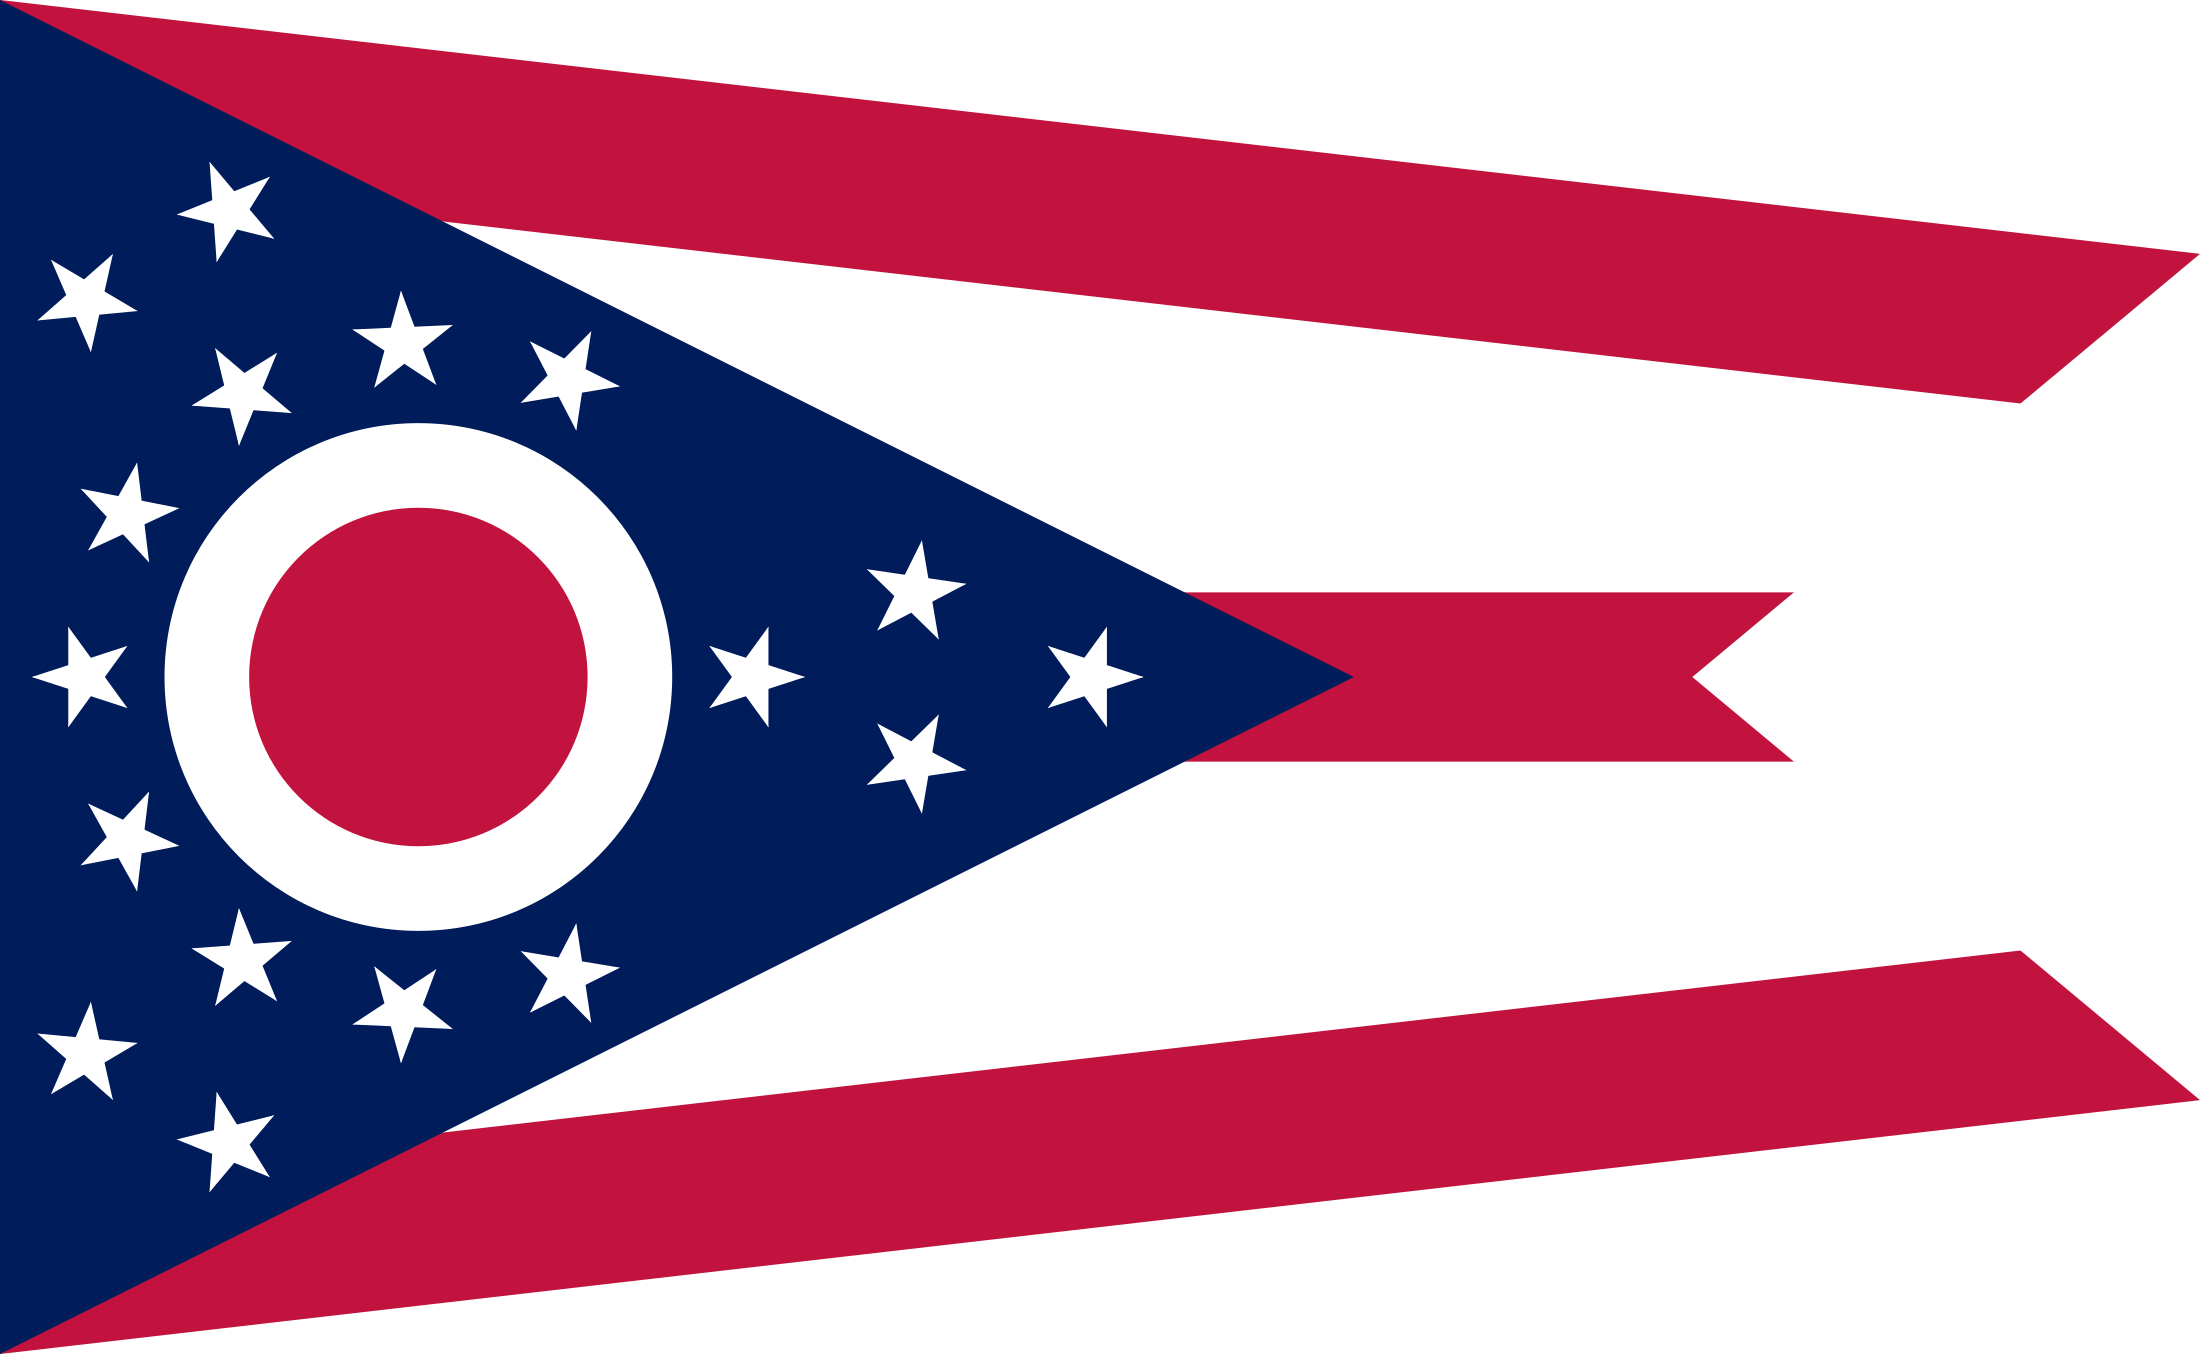 Ohio state flag png. Svg vector freebie supply